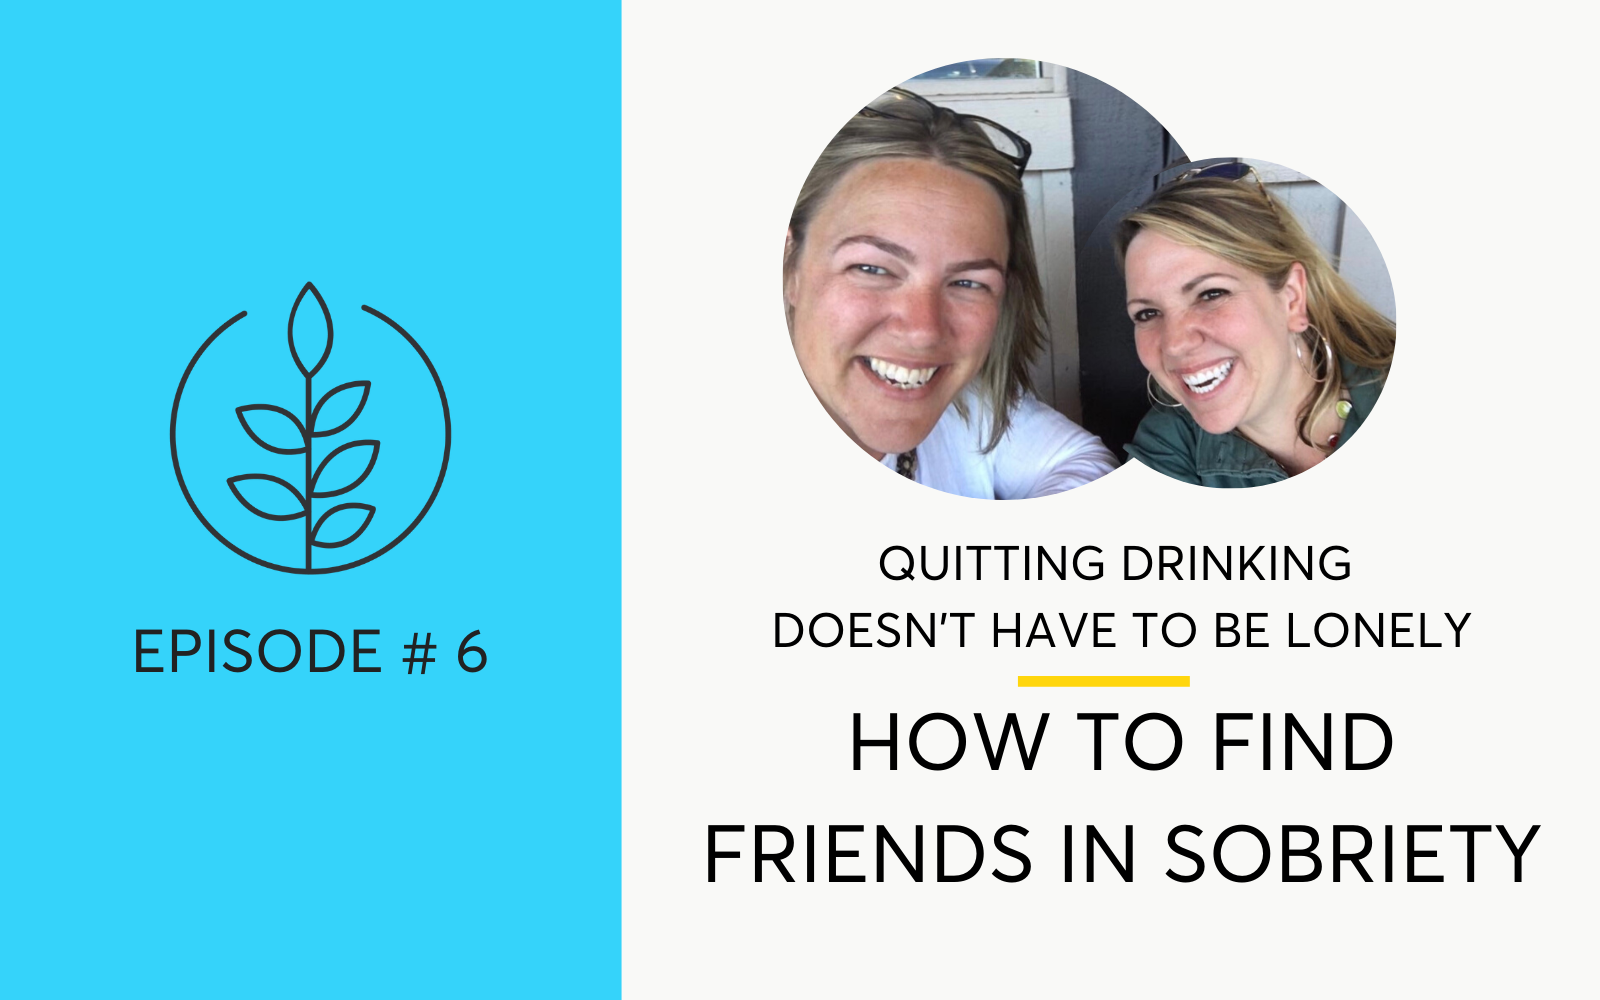 Finding Friends in Sobriety